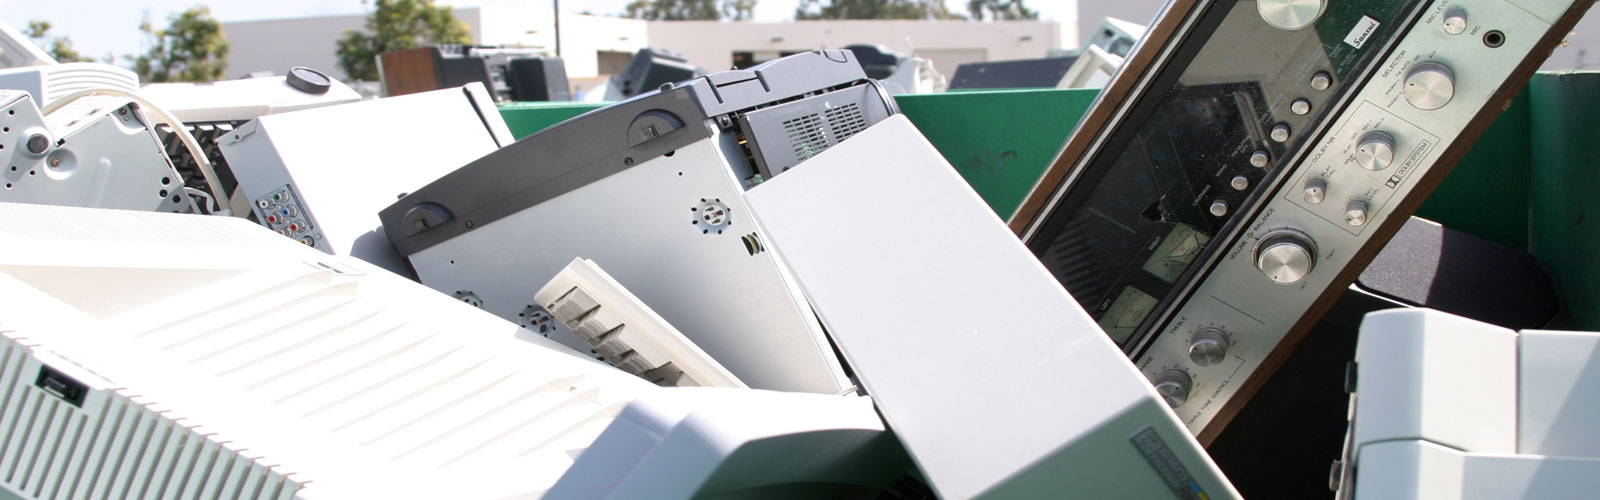 electronic-recycling-honolulu